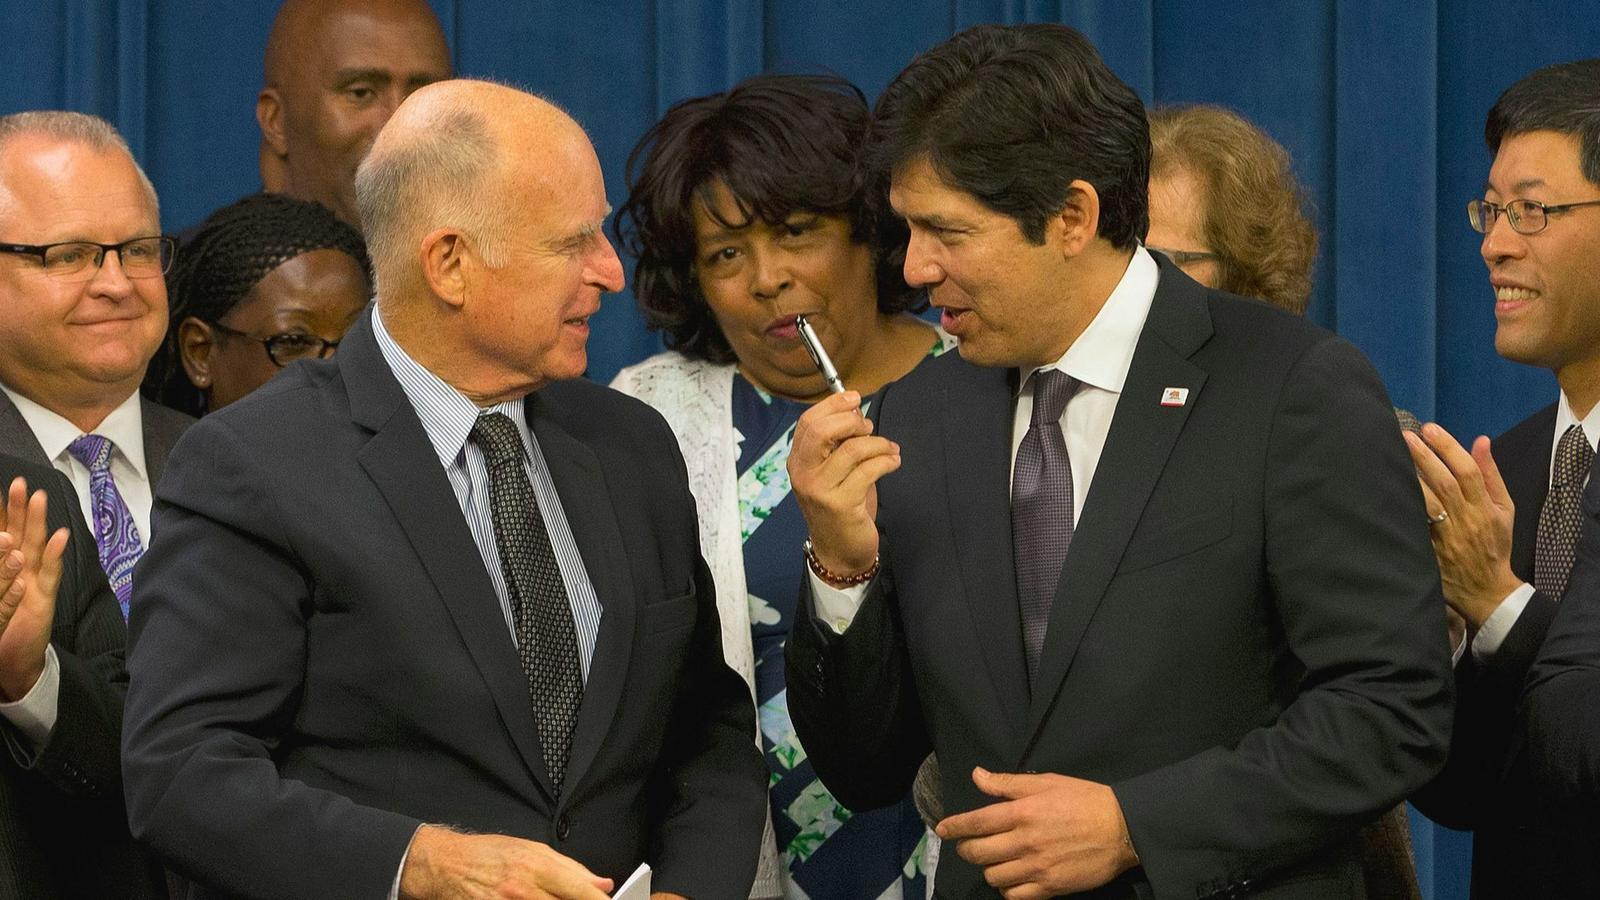 State Legislators pass bill to make California a 'sanctuary state'